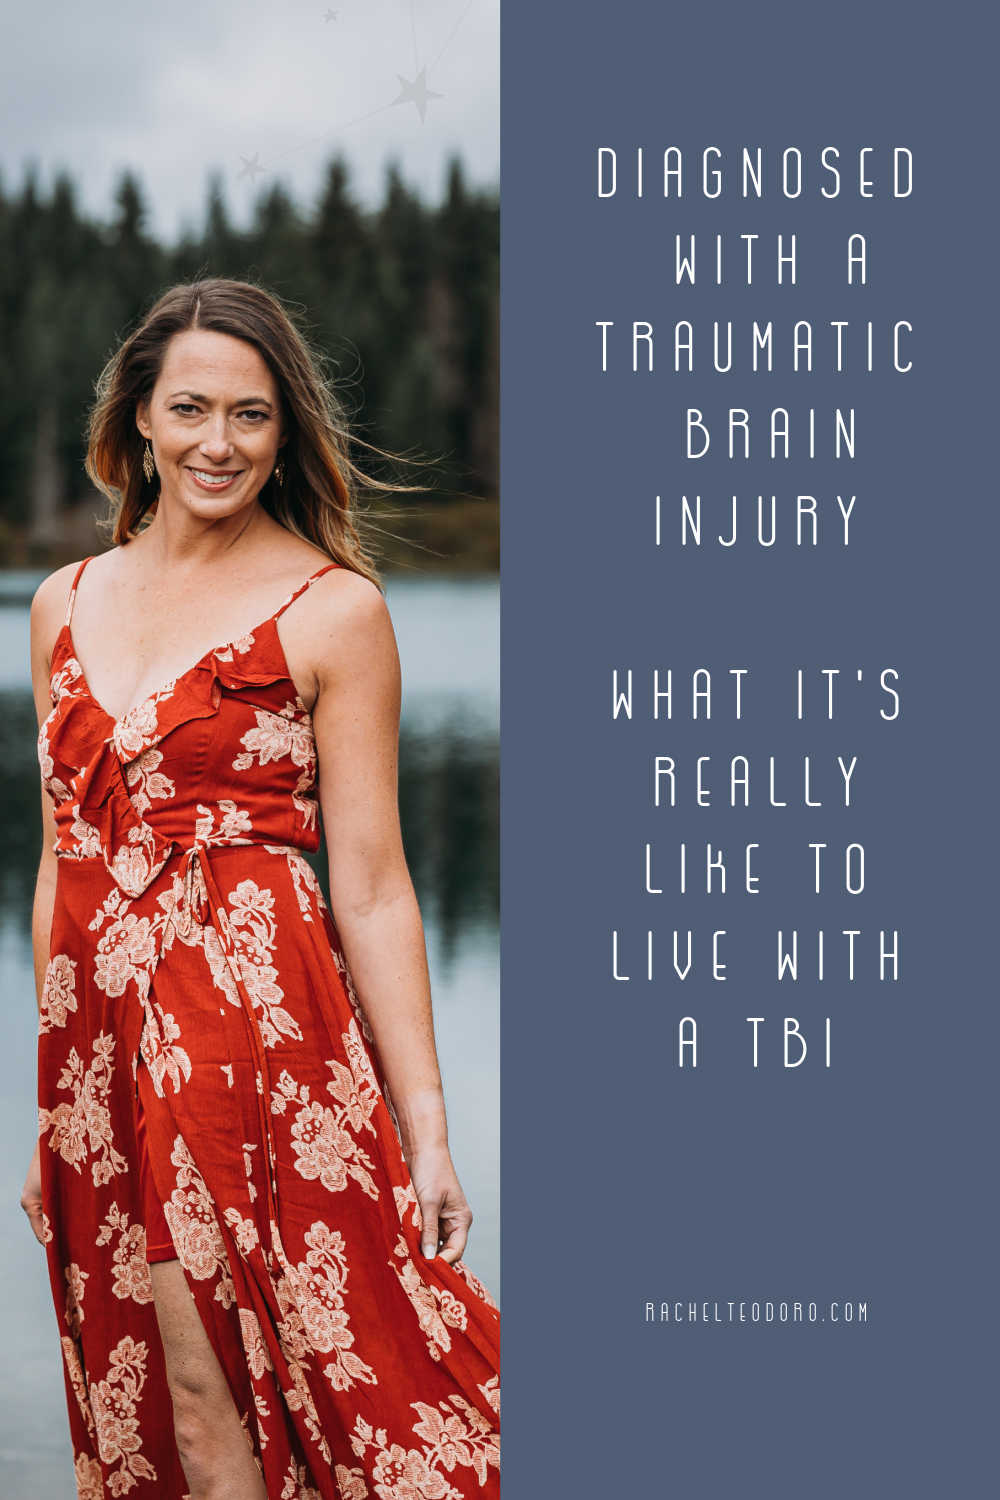 WHAT IS IT REALLY LIKE TO HAVE A TBI